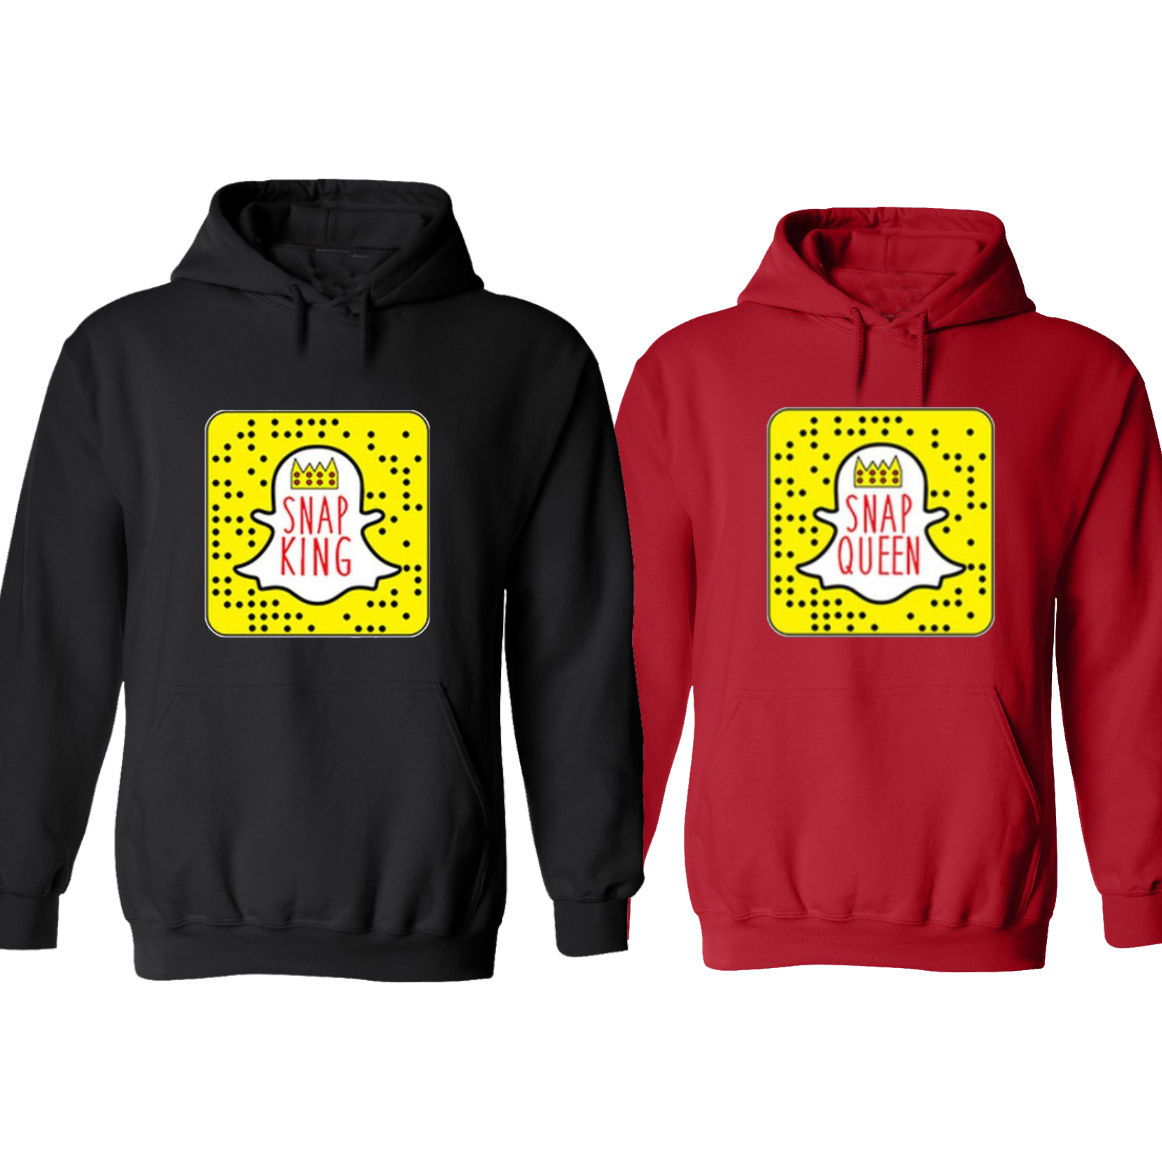 couple hoodies couple matching hoodies snapchat snap king snap queen valentineu0027s day jacket qnawjnr